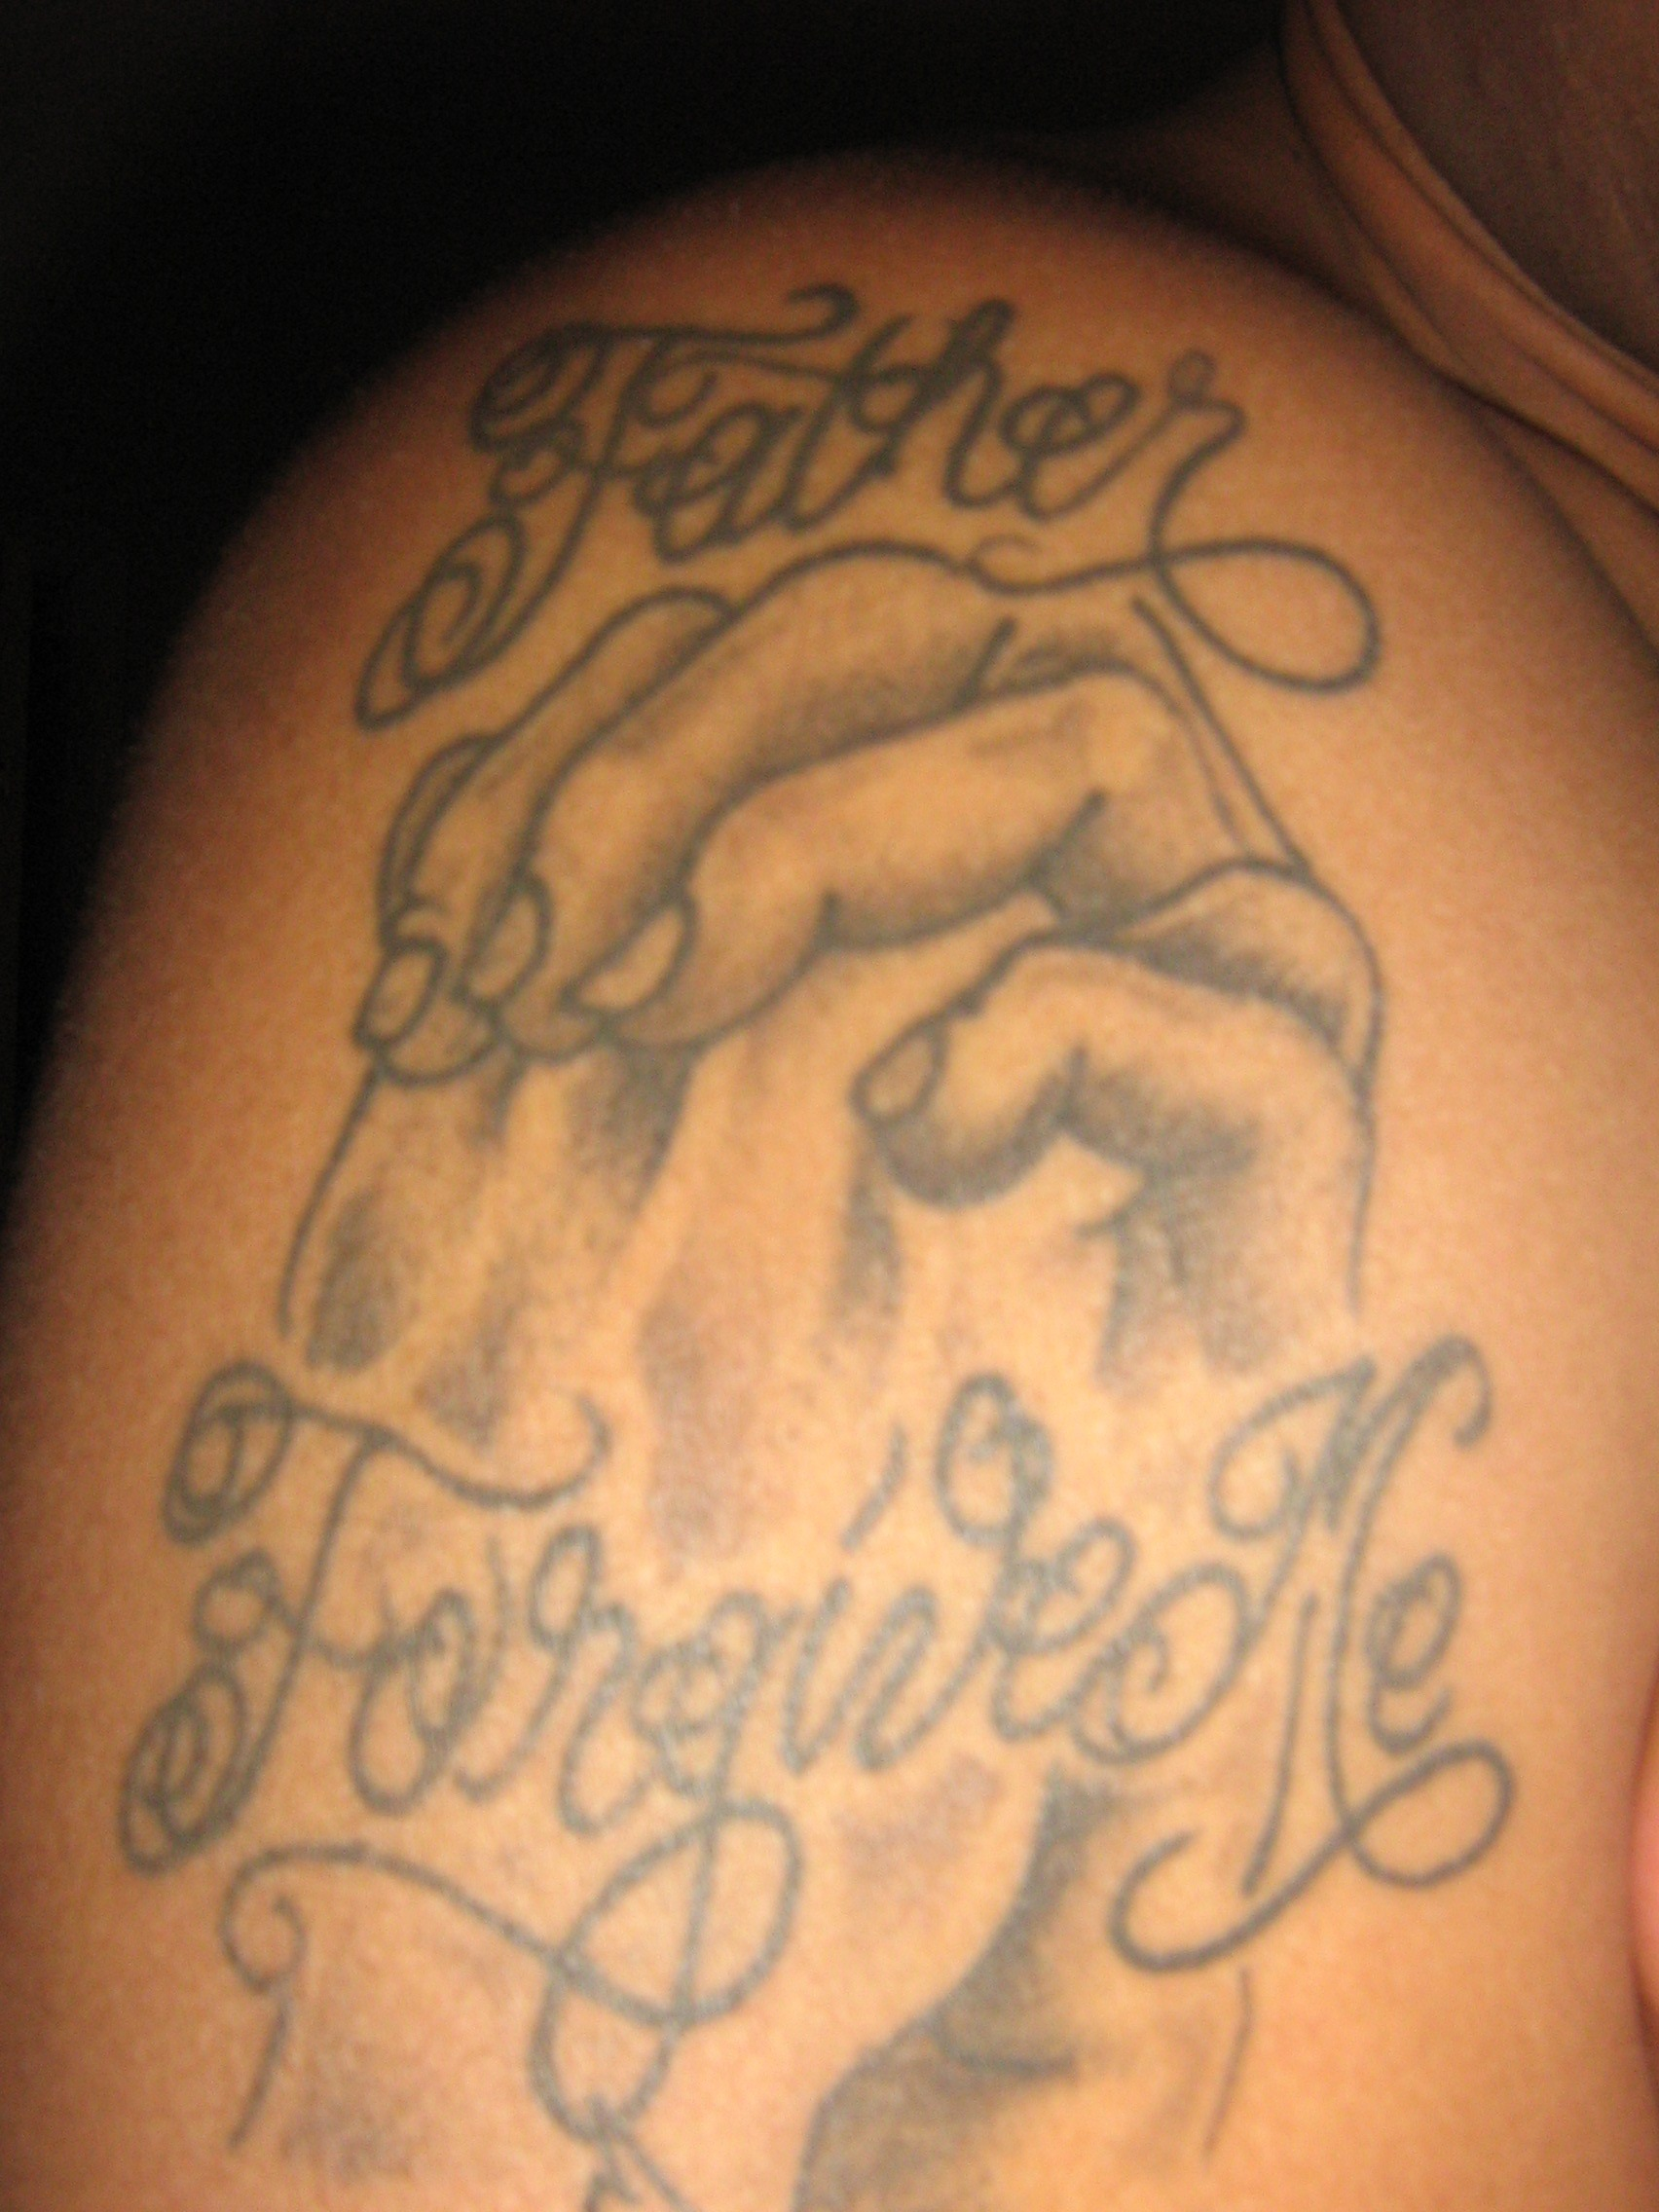 father forgive me tattoo picture. Black Bedroom Furniture Sets. Home Design Ideas